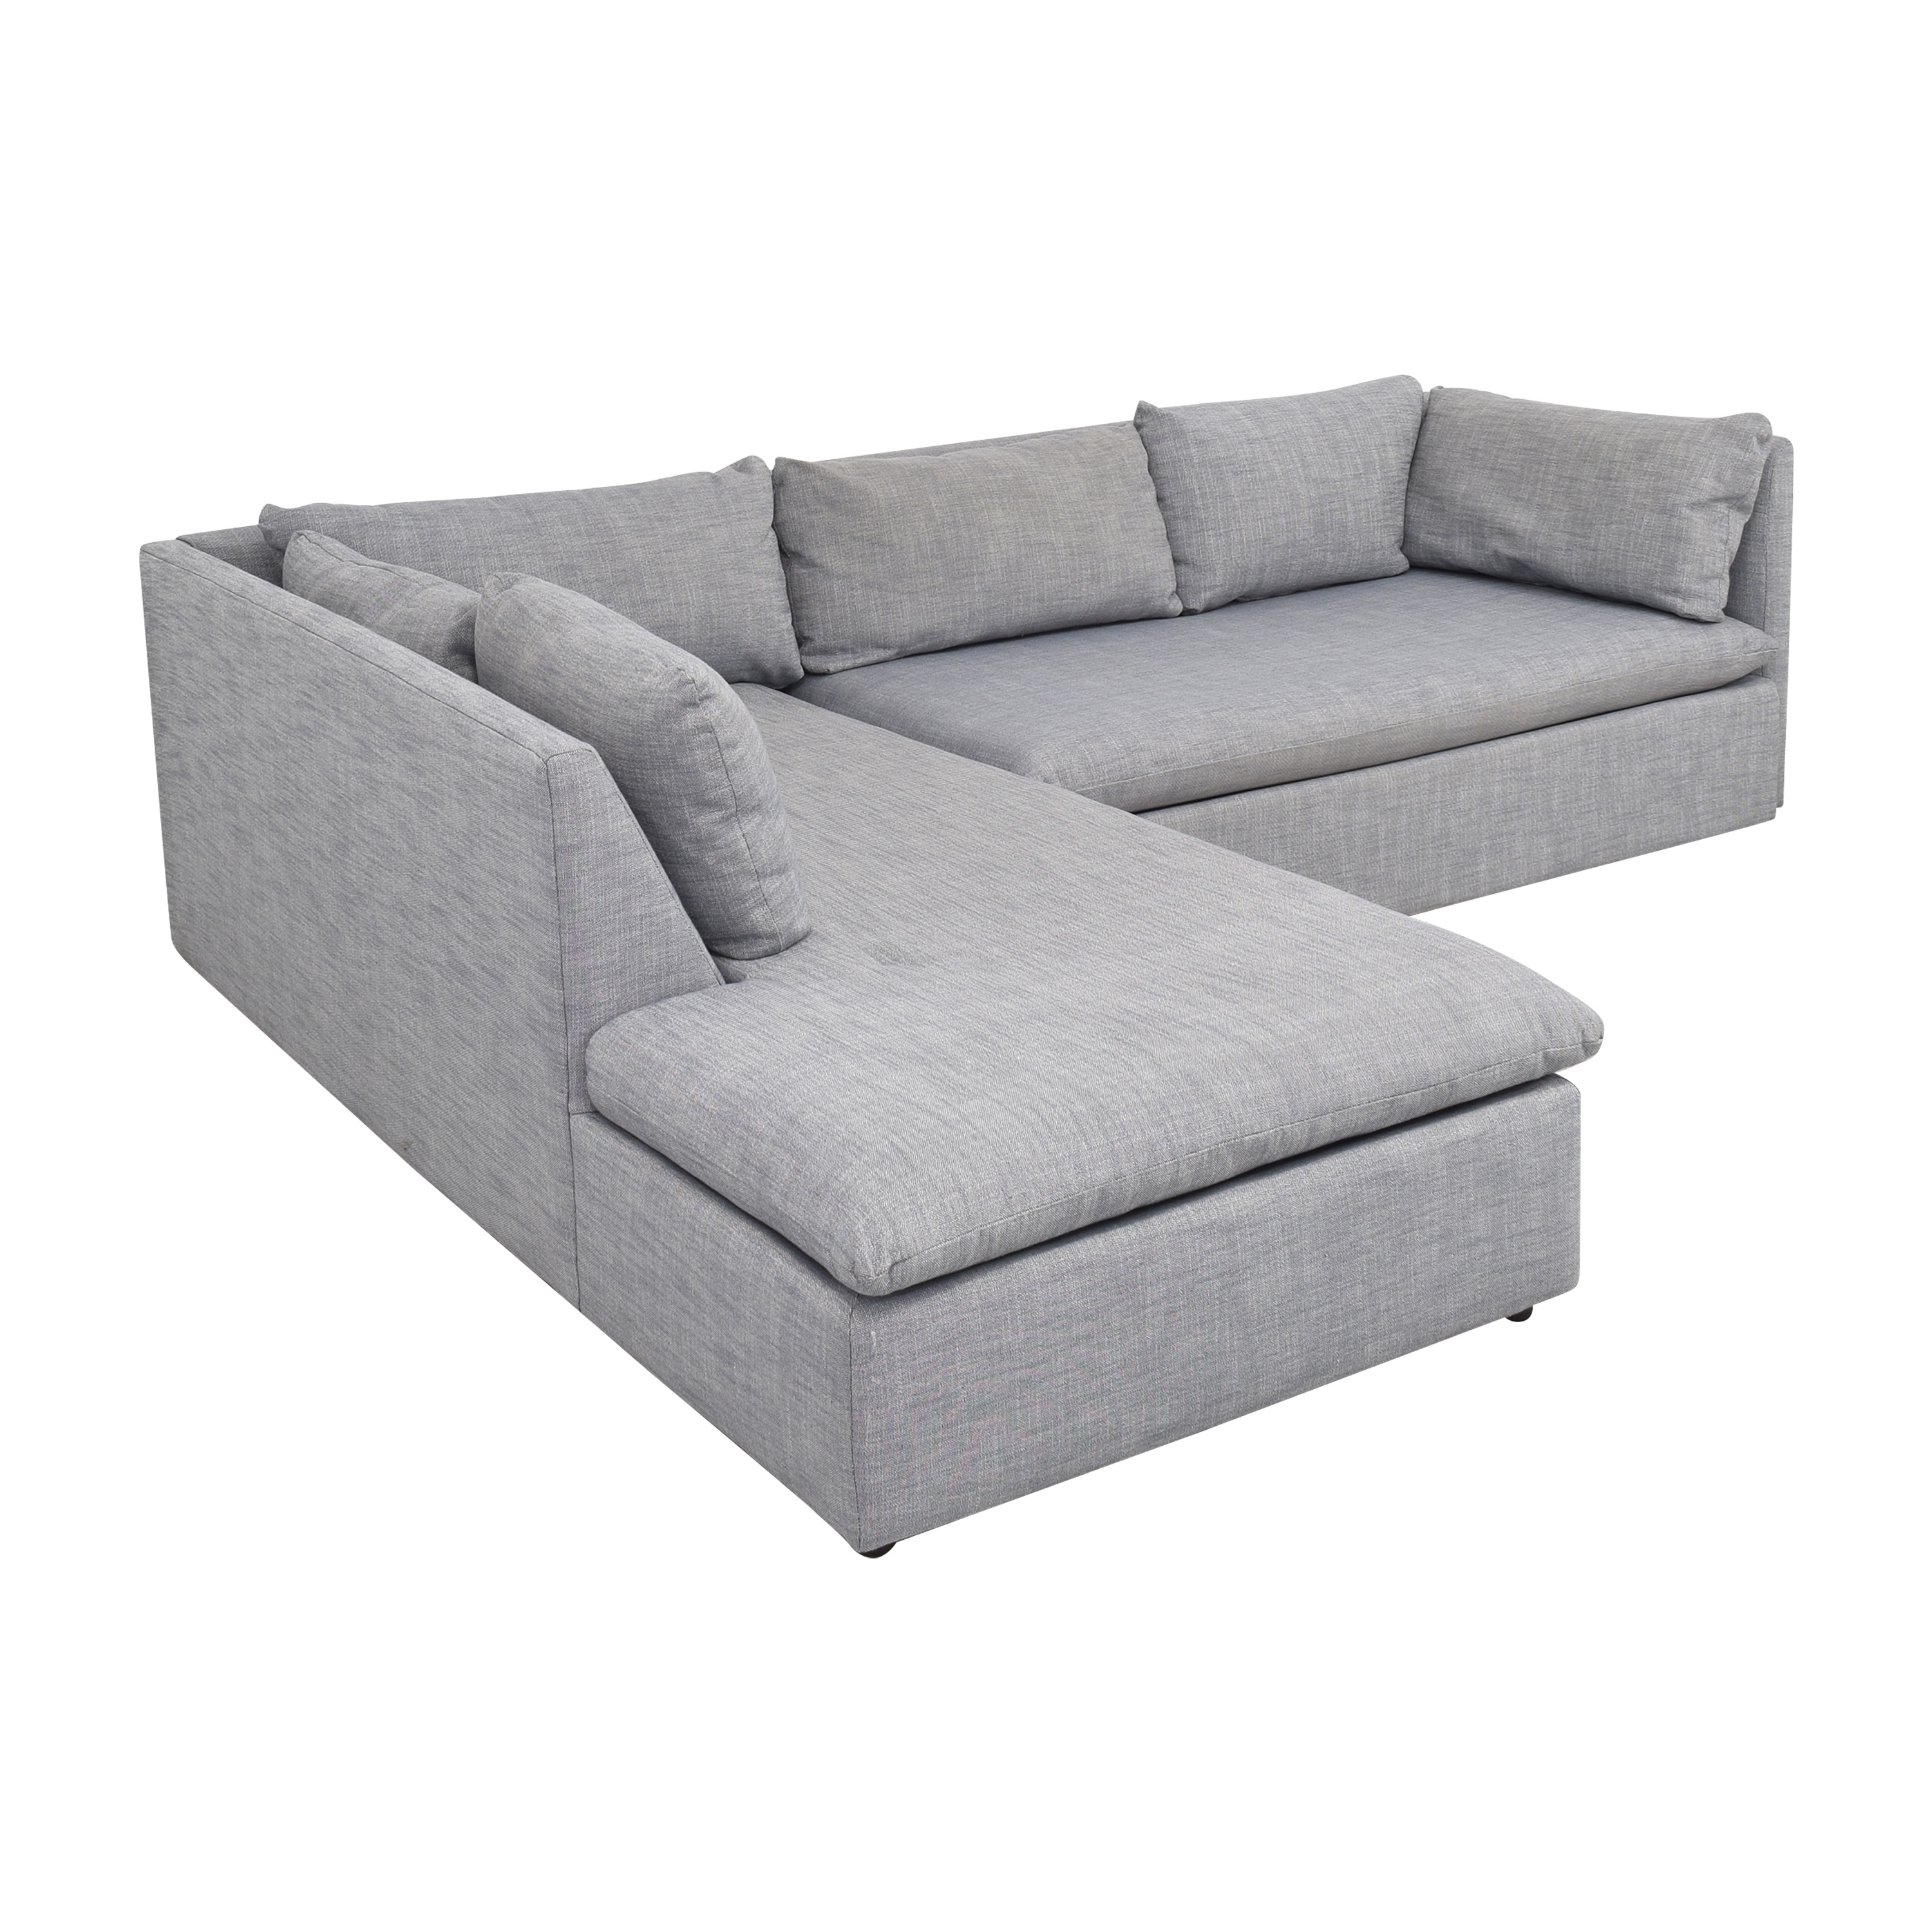 West Elm Shelter 2-Piece Terminal Chaise Sectional / Sofas